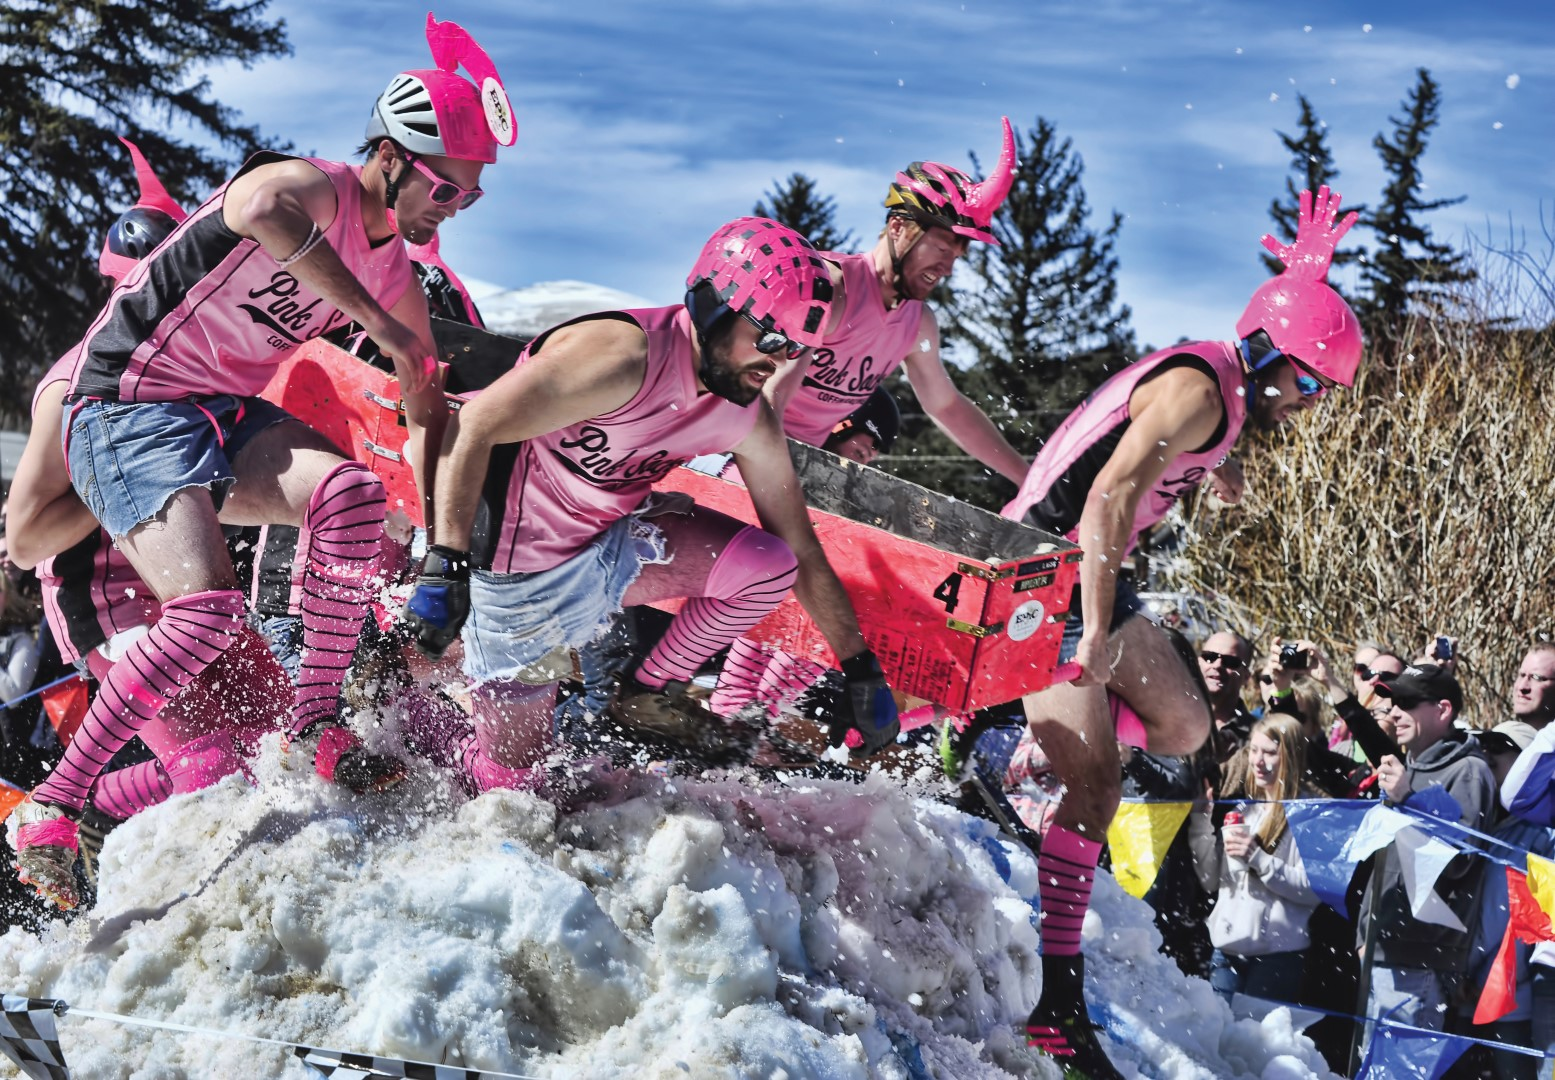 "Held in Nederland, Colorado, each year since 2002, Frozen Dead Guy Days celebrates Grandpa Bredo, whose body lies frozen on dry ice in a Tuff Shed above town. Among the many events are the Coffin Races. Teams in costume race with a coffin and 'corpse' in tow through a course full of obstacles, mud, snow, and other racers. What began as a local's event has blossomed into a shindig that in 2016 attracted an estimated 22,000 revelers. Readers Digest called it one of the ""Top Five Winter Festivals in the Country,"" while readers of USA Today proclaimed it one of the ""Top 10 Best Cultural Festivals."" Heck, it's even been written up in the New York Times. Photo by Dave Meas, courtesy Amanda MacDonald."